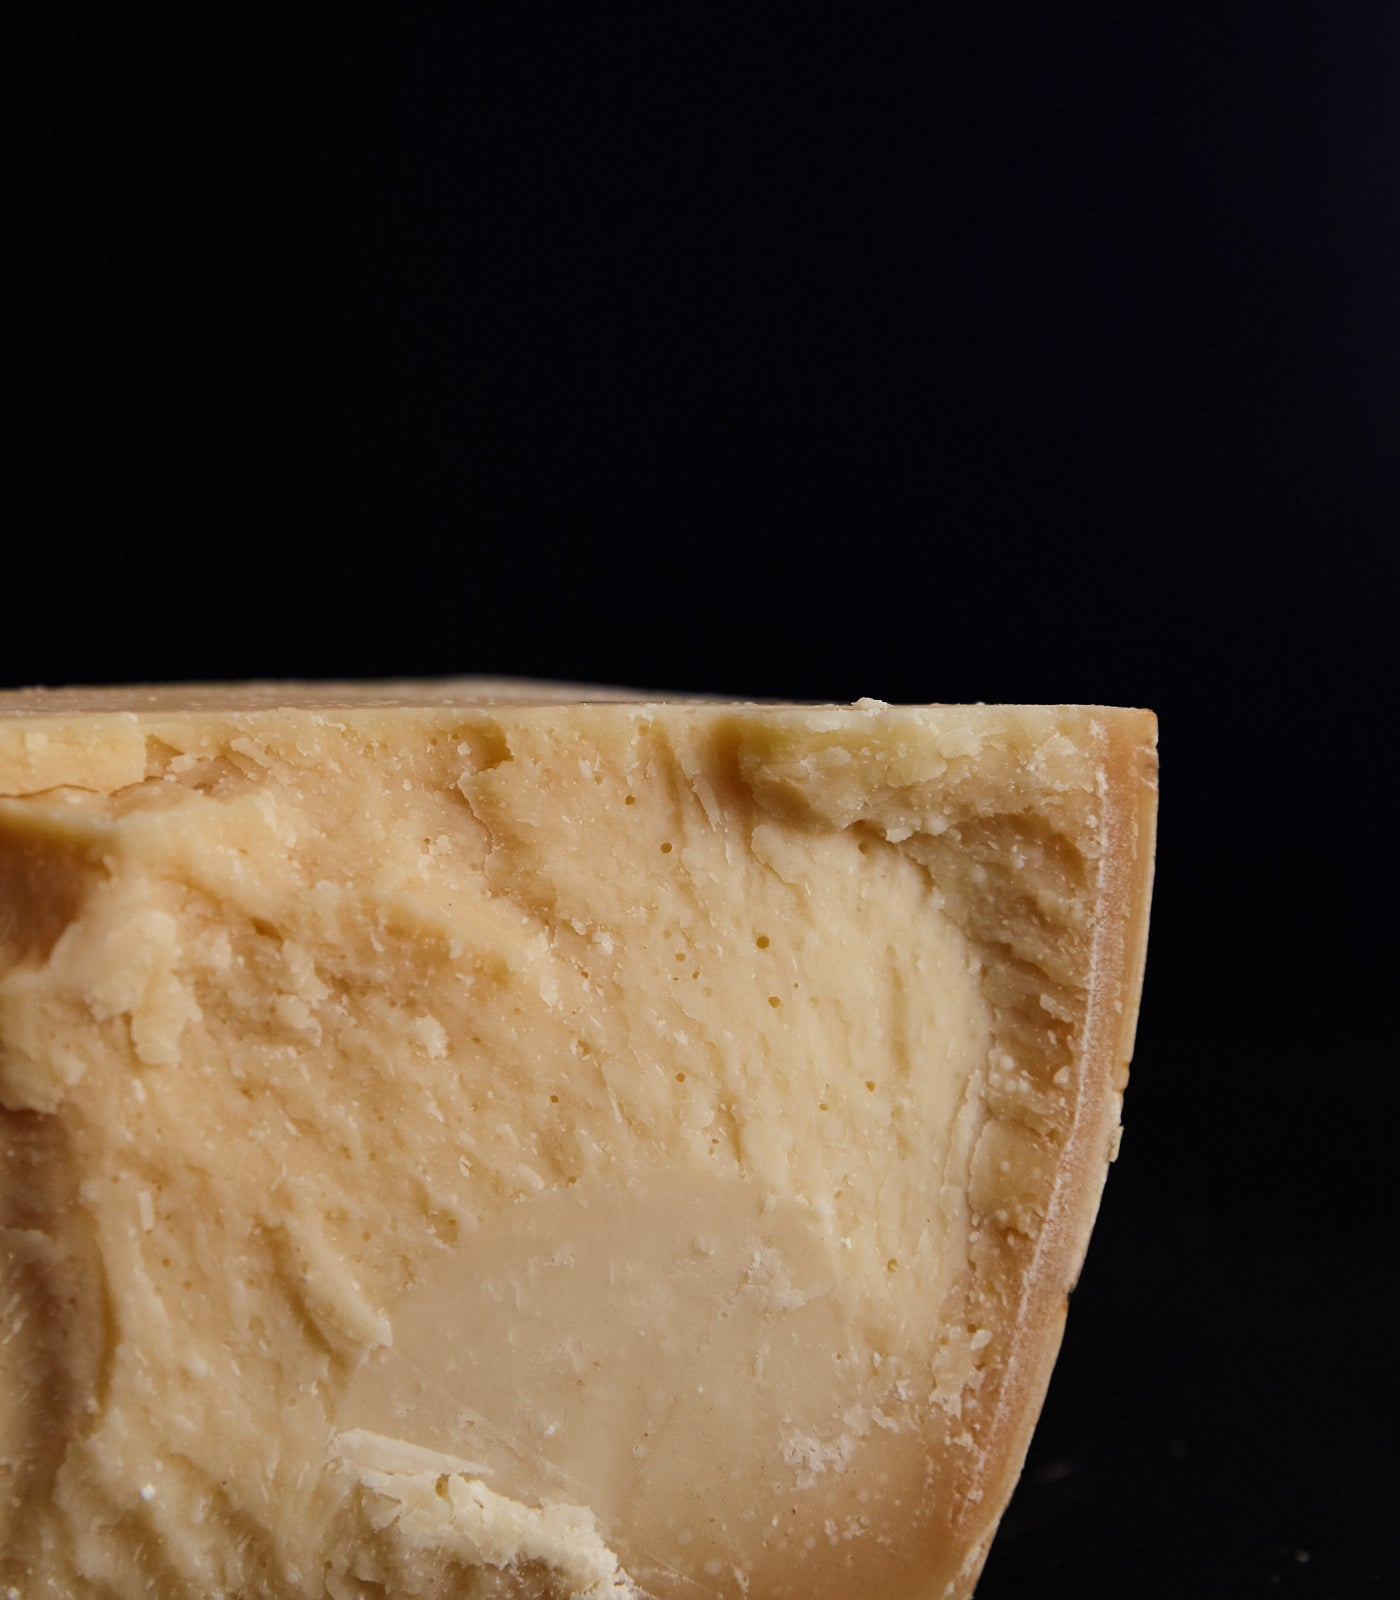 A tower of whole and various cut pieces of Parmigiano San Pietro 2659 cheese showing the print-covered rind and hard, dense, creamy paste    Close up of a cut piece of Parmigiano San Pietro 2659 cheese showing the hard rind and dense, creamy paste